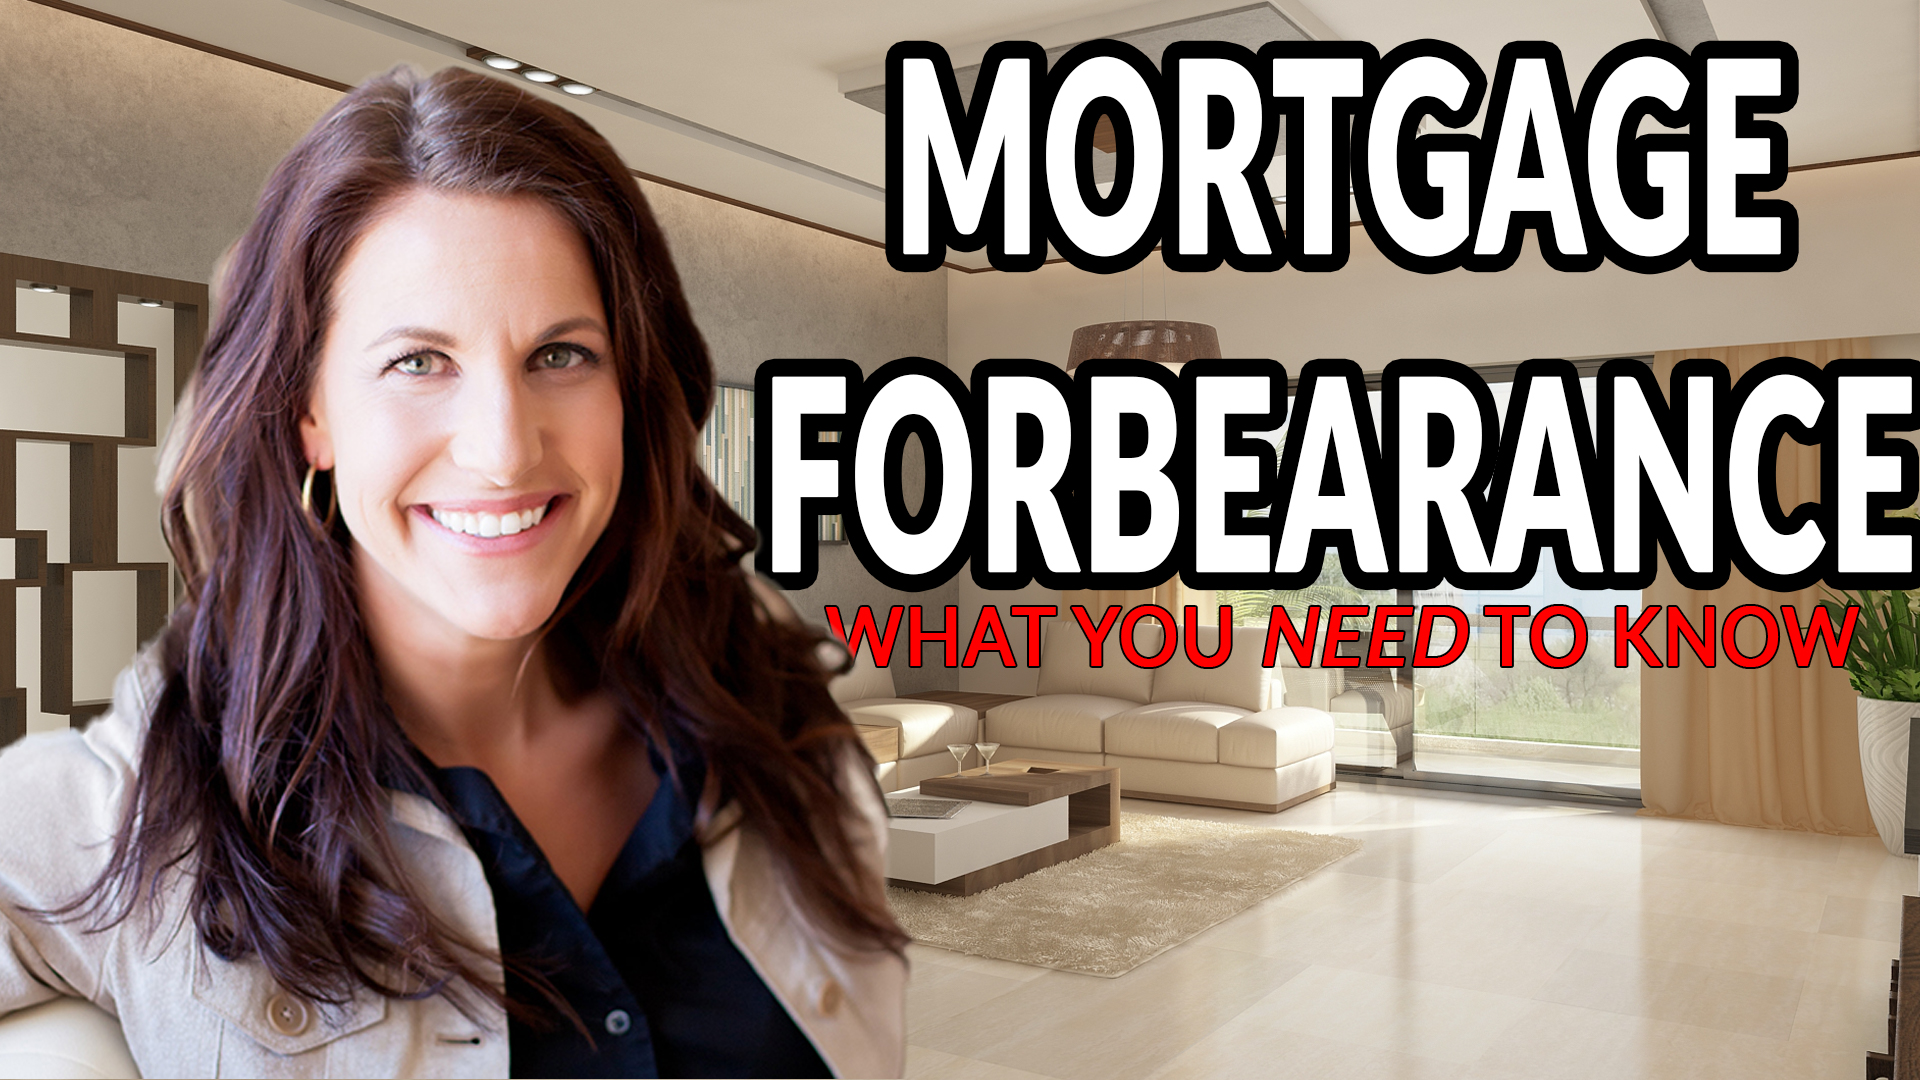 Mortgage Forbearance: Is It Your Only Option?